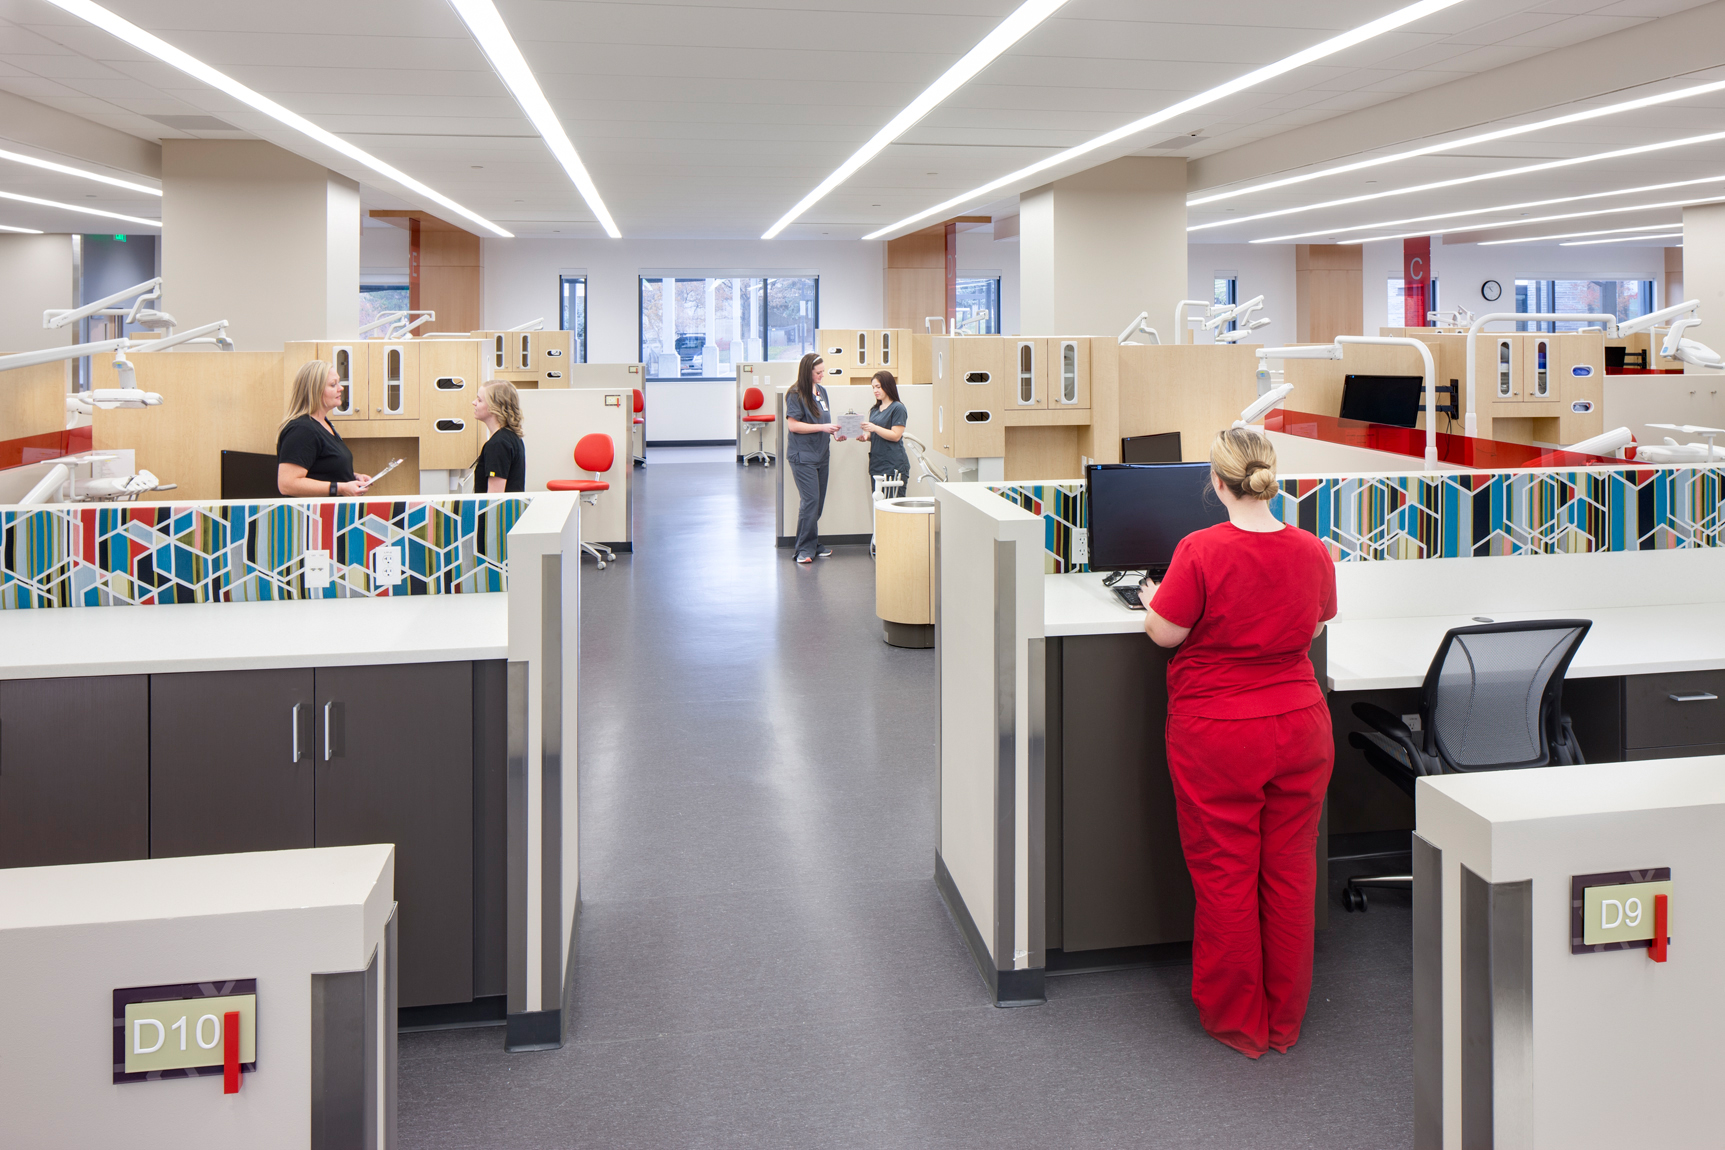 General Practice lab at the U of U Oral Health & Sciences Building with rows of dental stations and a student in proper dental attire.